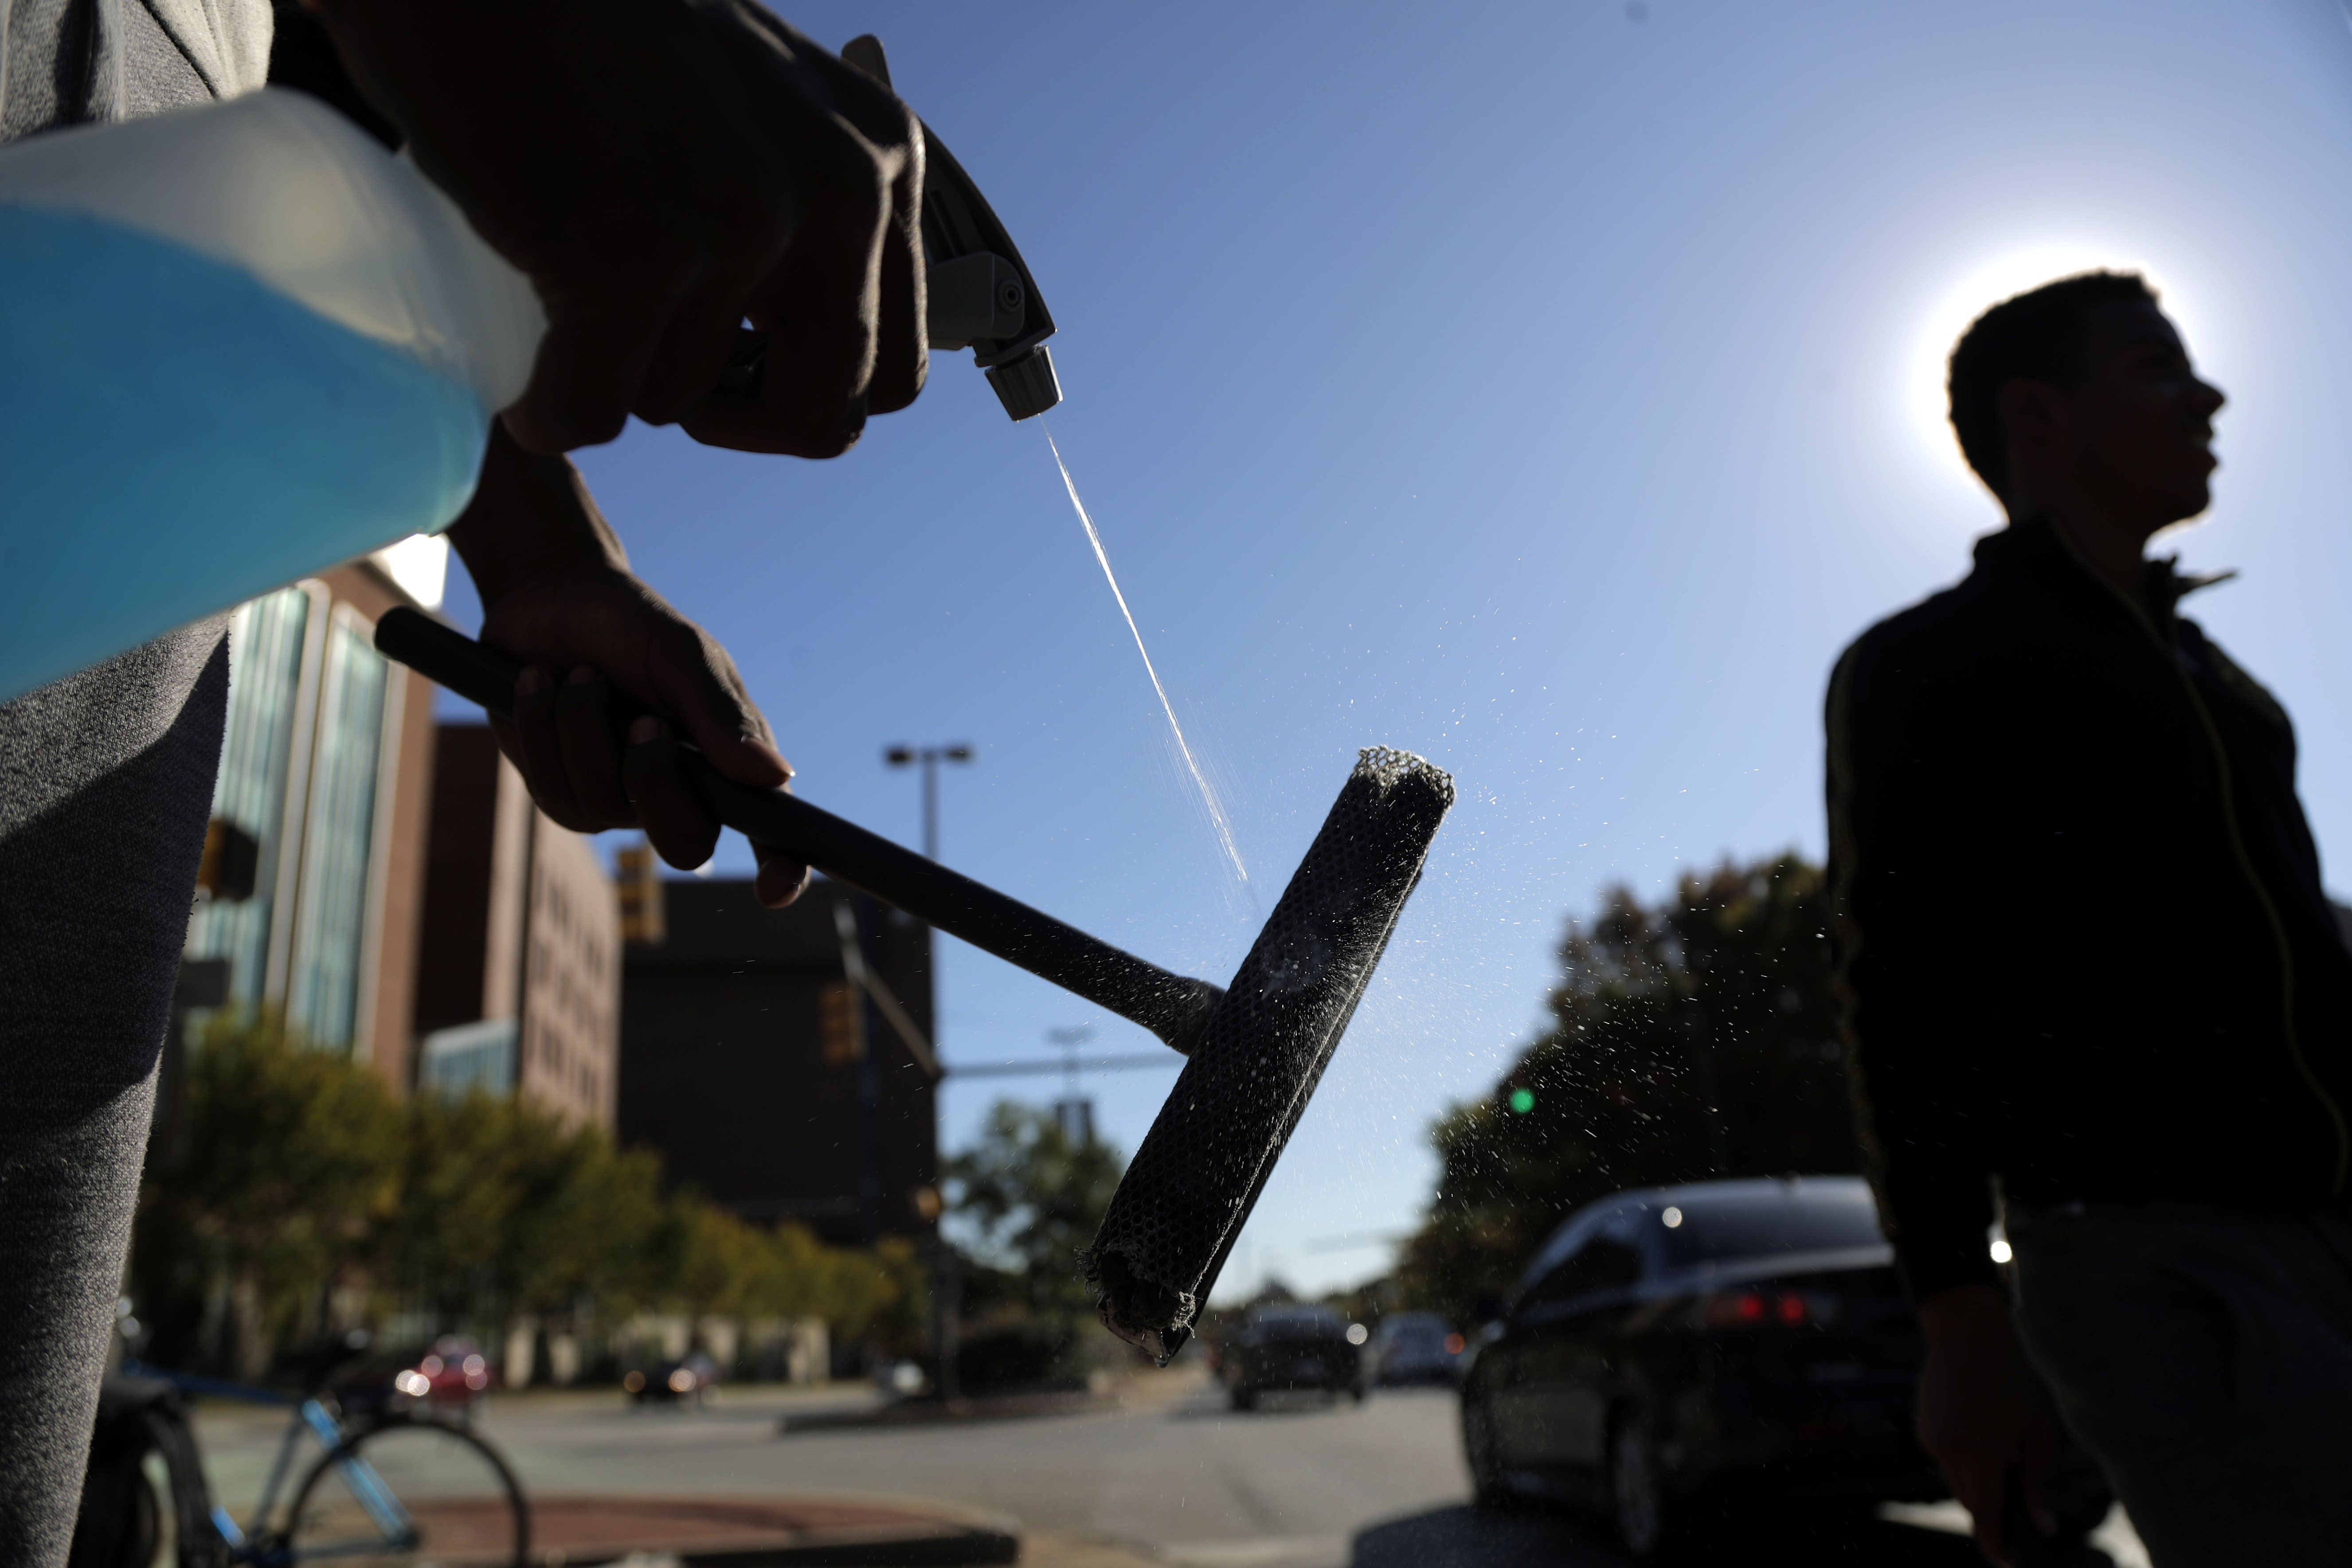 In a photo taken Thursday, Oct. 24, 2019, Jerome Holloway, left, sprays his squeegee as he and another teenager walks by as they work a corner in Baltimore. A debate over Baltimore's so-called squeegee kids is reaching a crescendo as the city grapples with issues of crime and poverty and a complicated history with race relations. Officials estimate 100 squeegee kids regularly work at intersections citywide, dashing into the street as red lights hit to clean windshields in exchange for cash from drivers. (AP Photo/Julio Cortez)